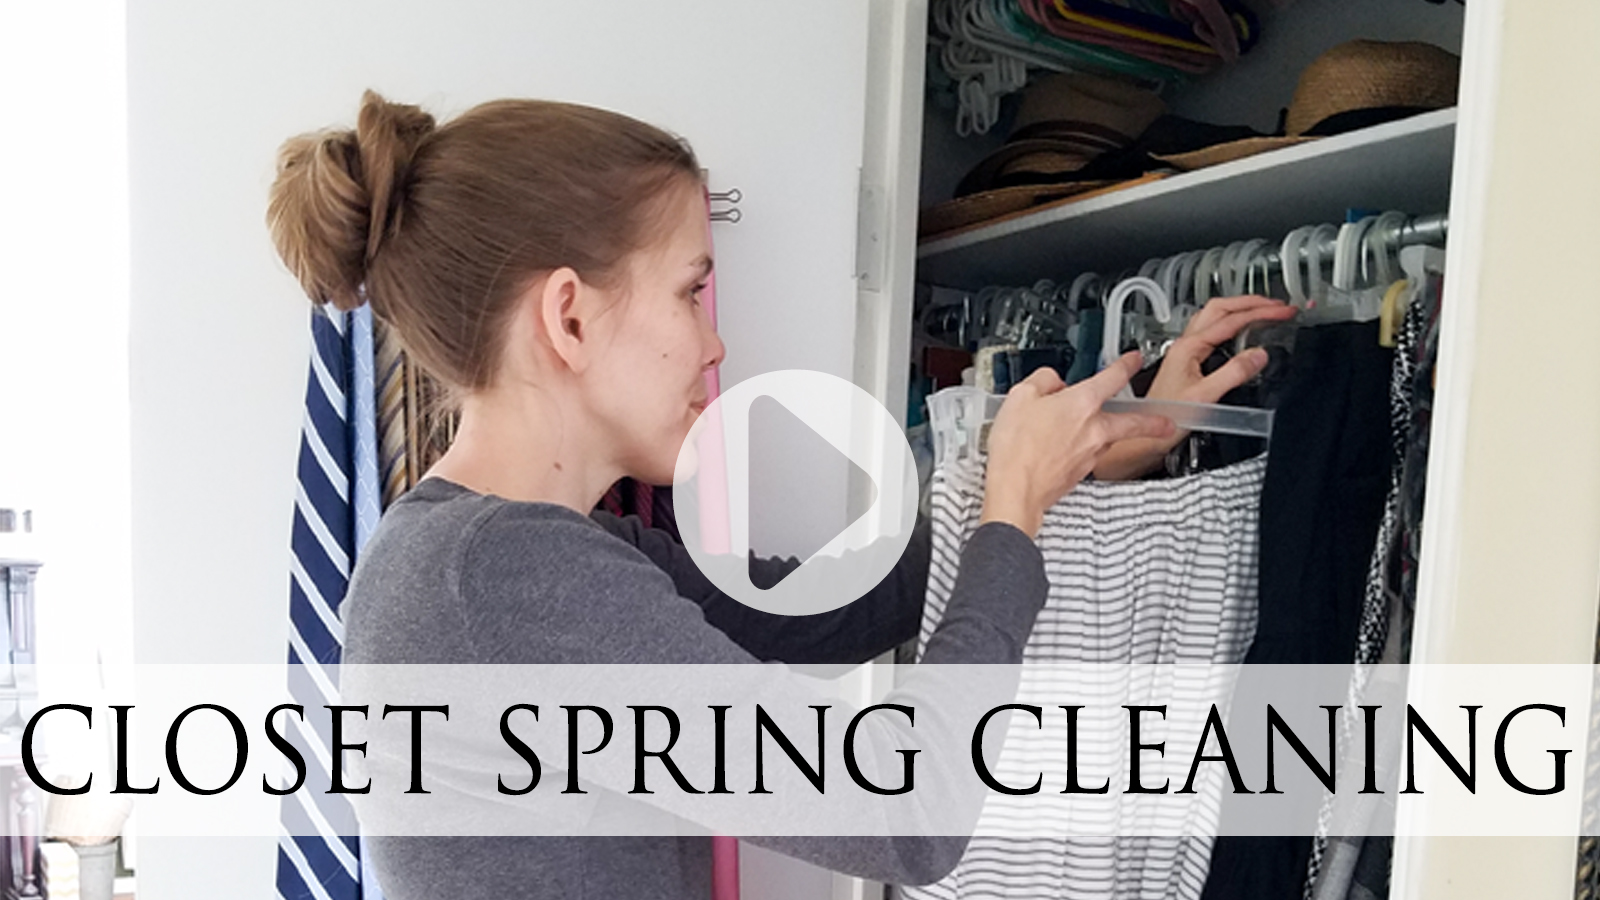 DIY Video Tutorial for Closet Spring Cleaning by Larissa of Prodigal Pieces   prodigalpieces.com